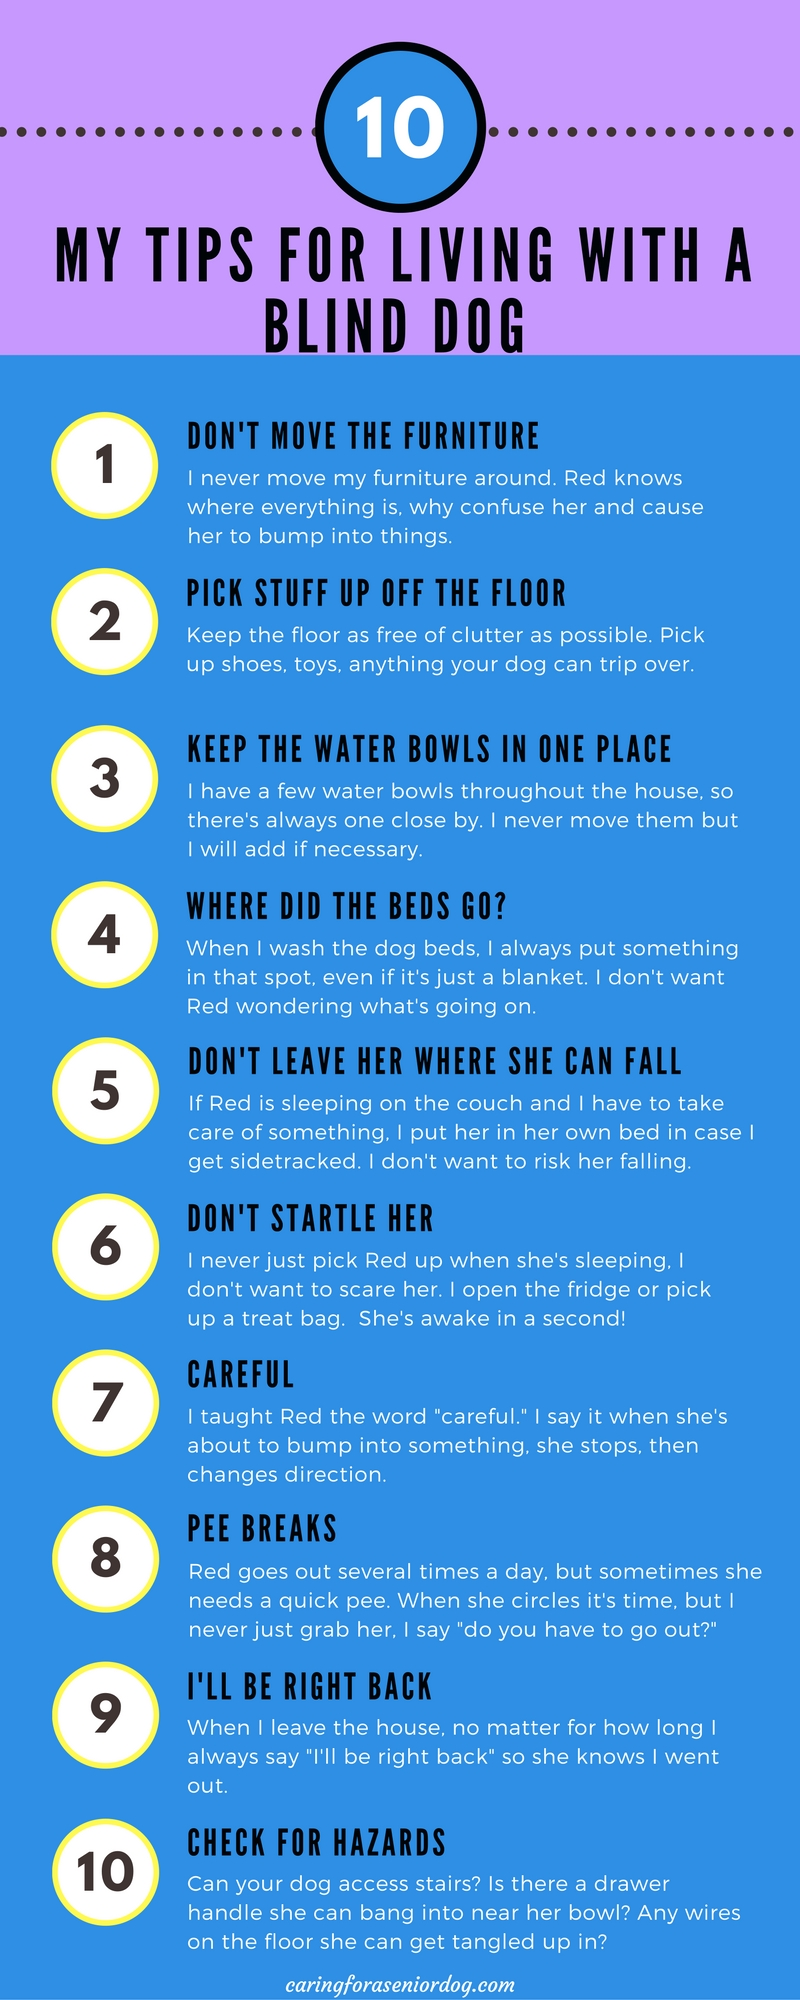 Infographic tips